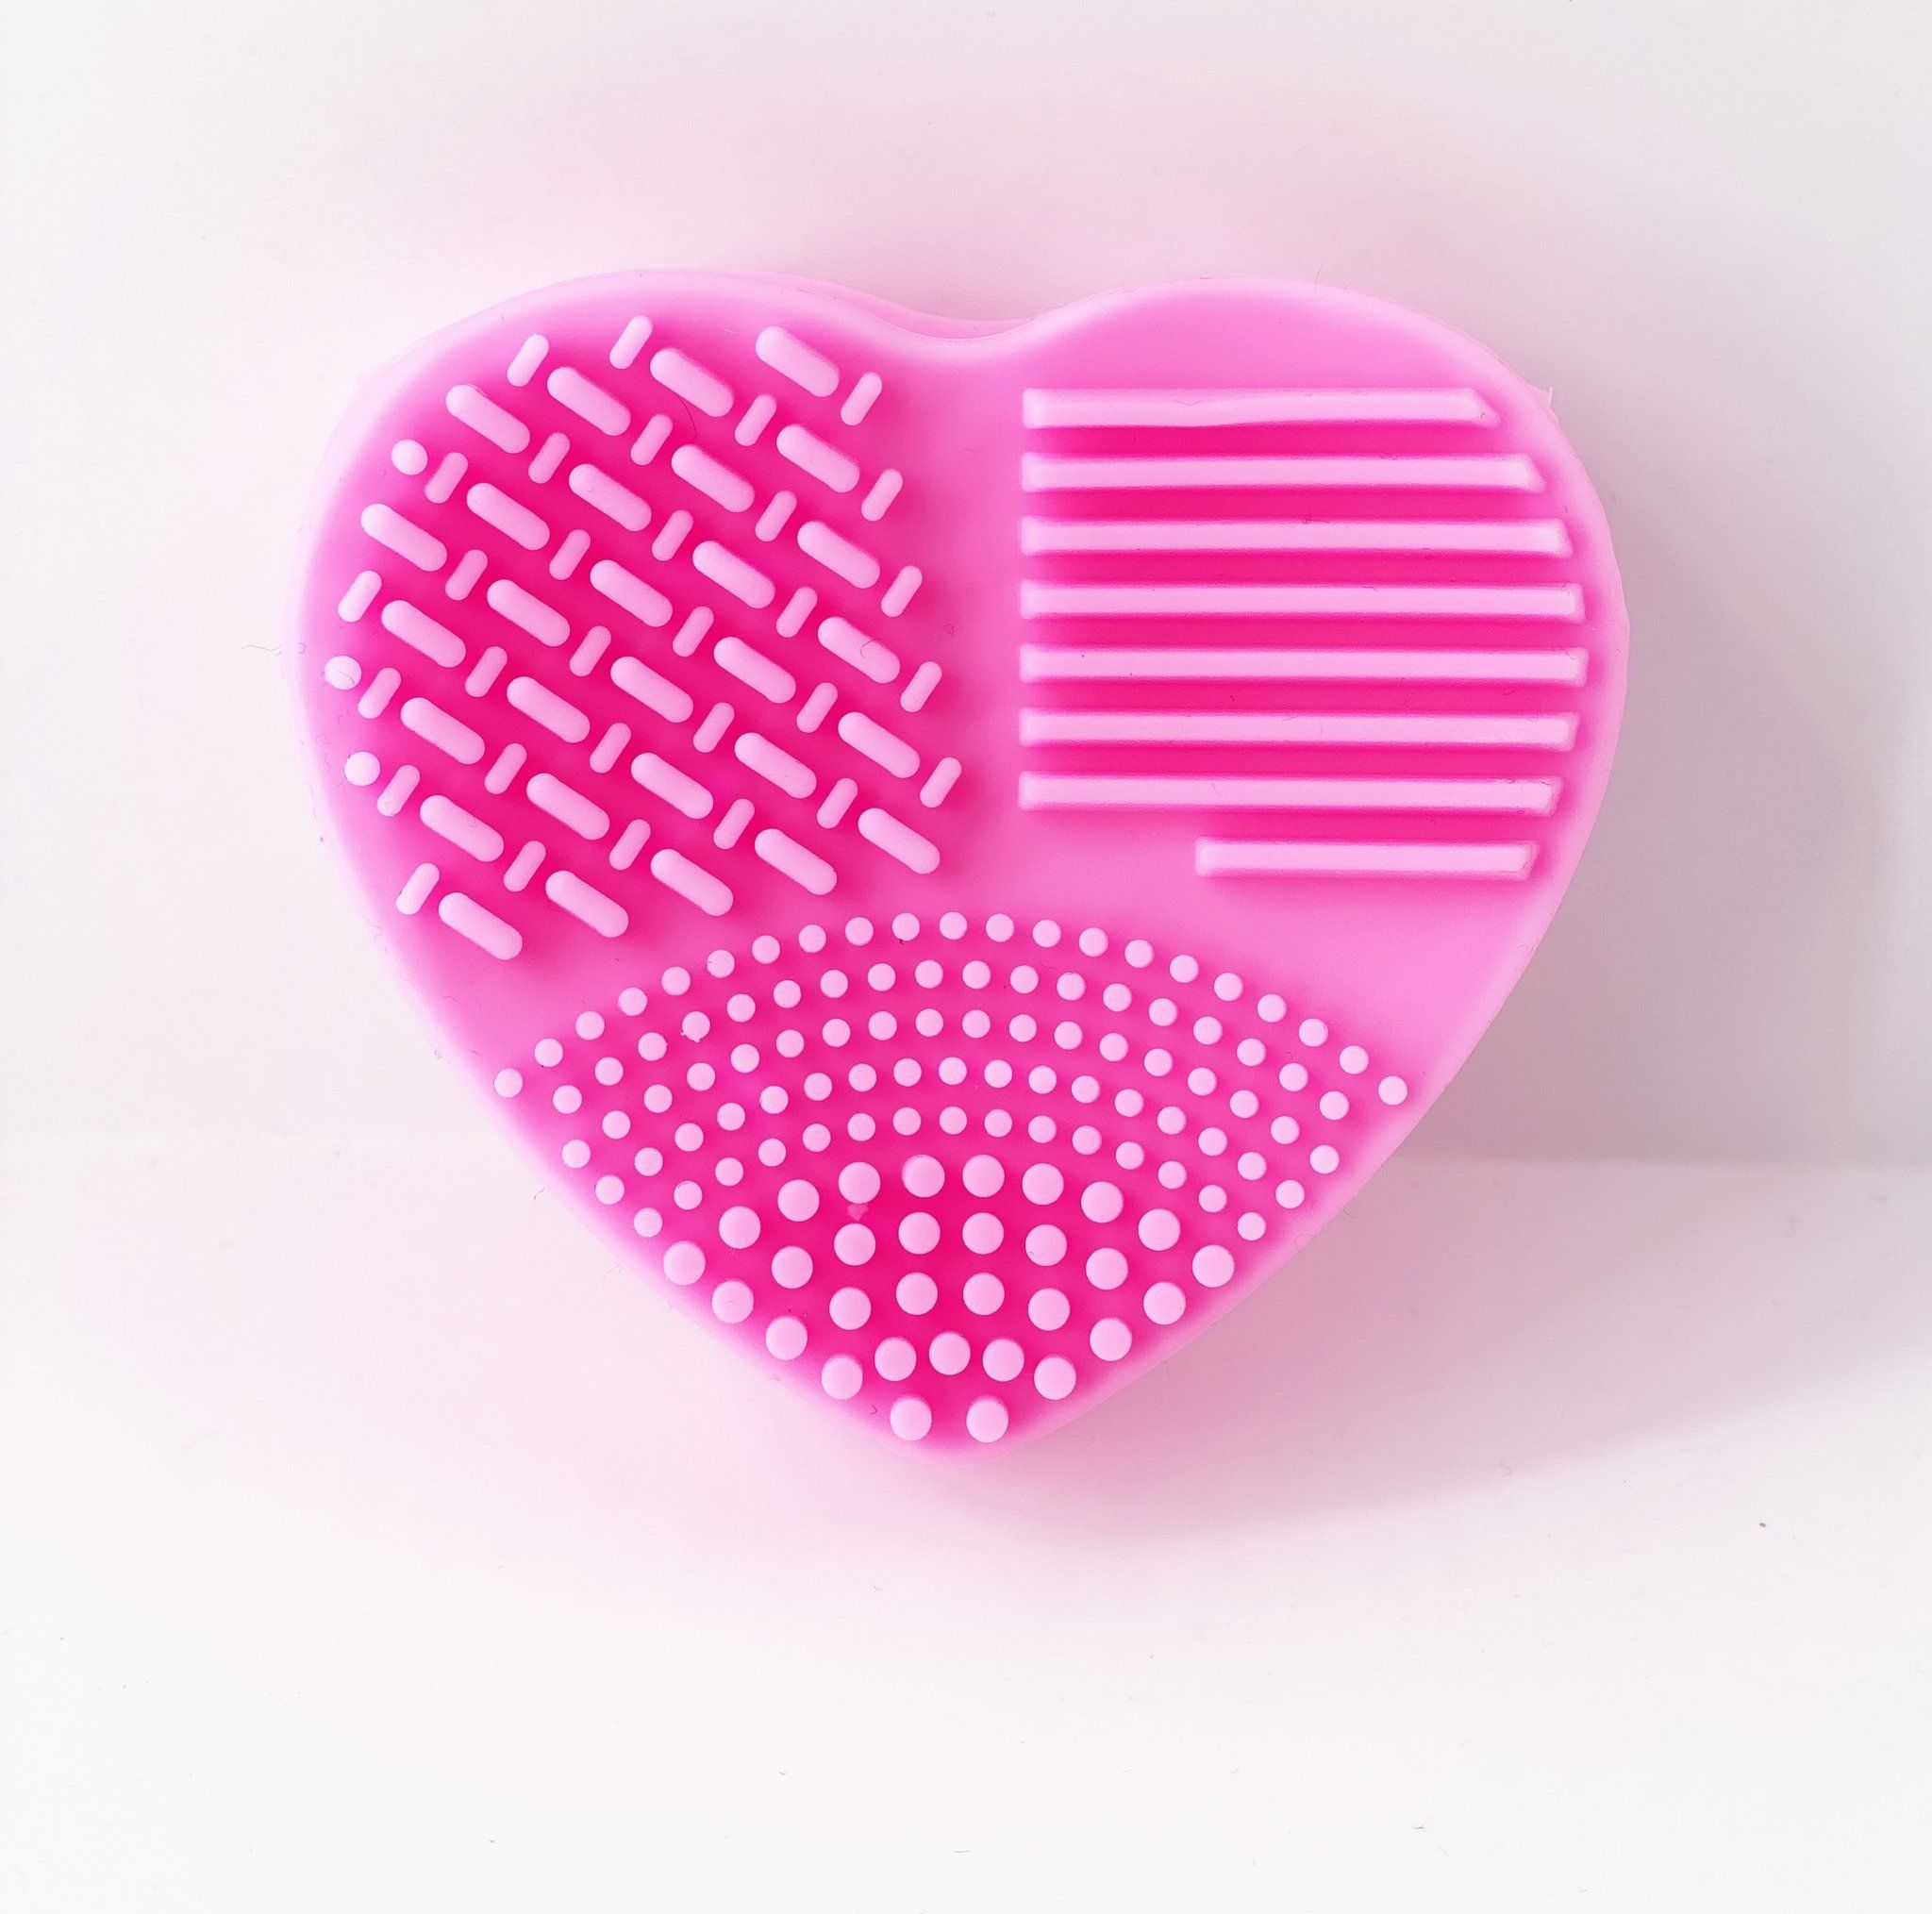 1 Heart Makeup Brush Cleaner Sugary Cosmetics In 2020 Makeup Brush Cleaner Brush Cleaner Makeup